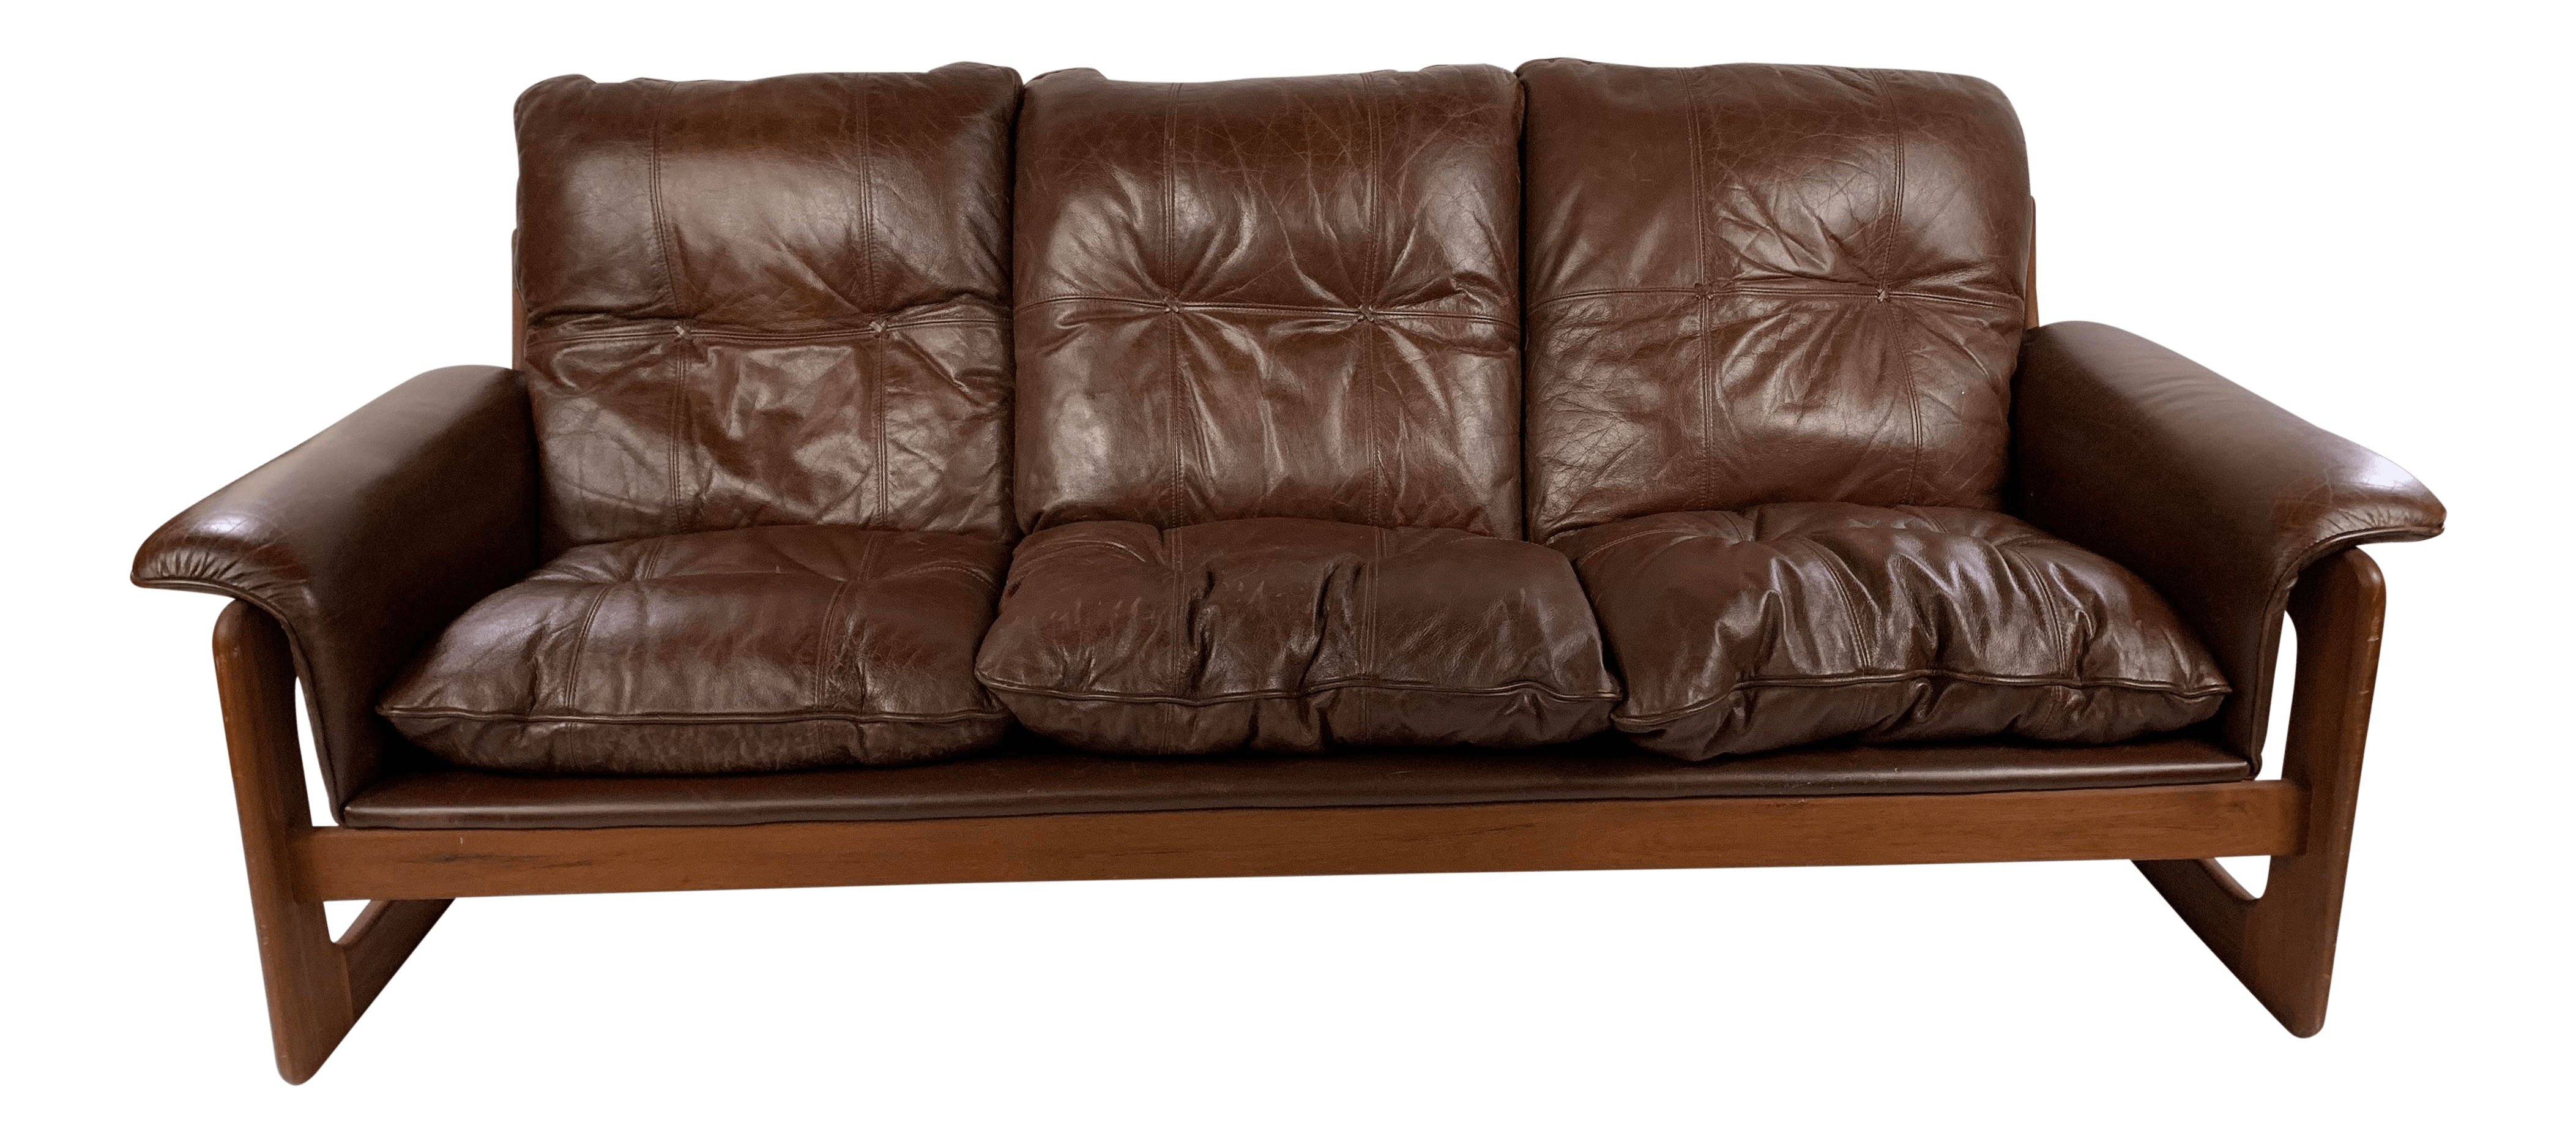 Leather Lounge Mid Century Danish Teak Leather Lounge Sling Couch